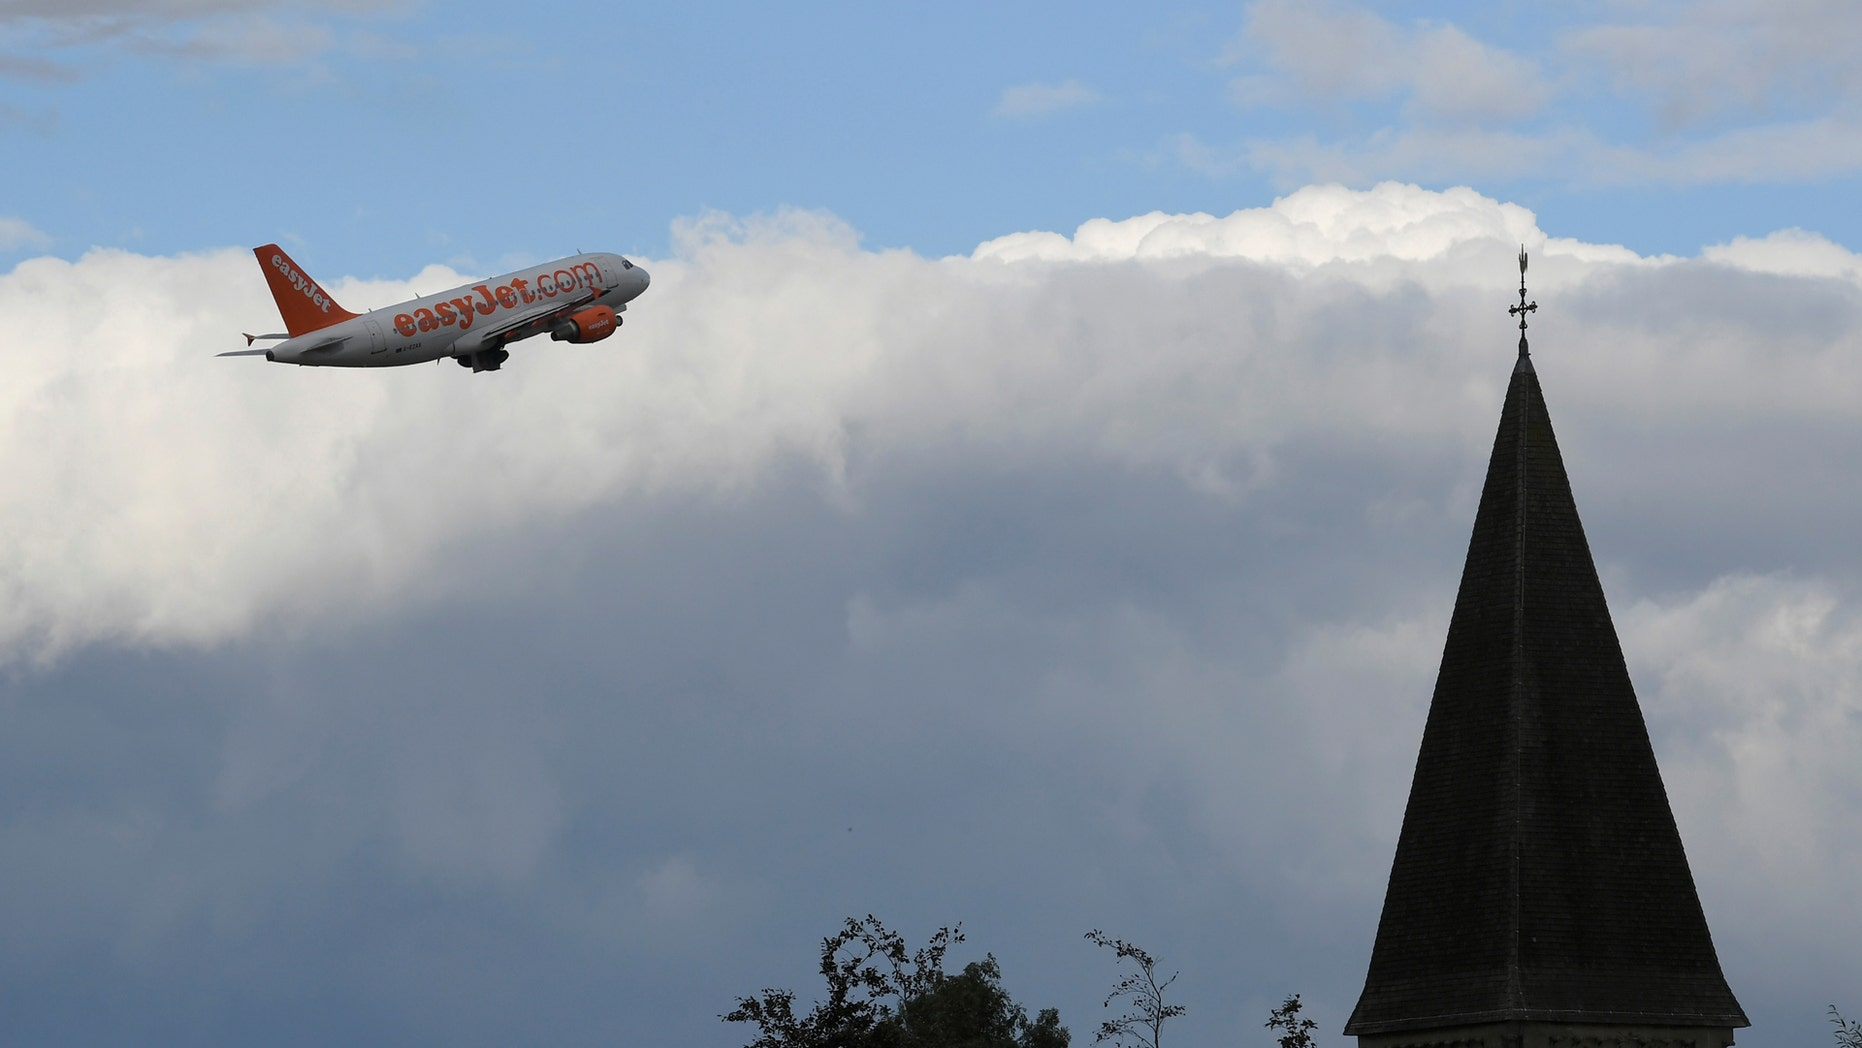 File photo - An EasyJet passenger aircraft is seen behind a church steeple as it takes off from Gatwick Airport in southern England, Britain, Oct. 9, 2016. (REUTERS/Toby Melville)